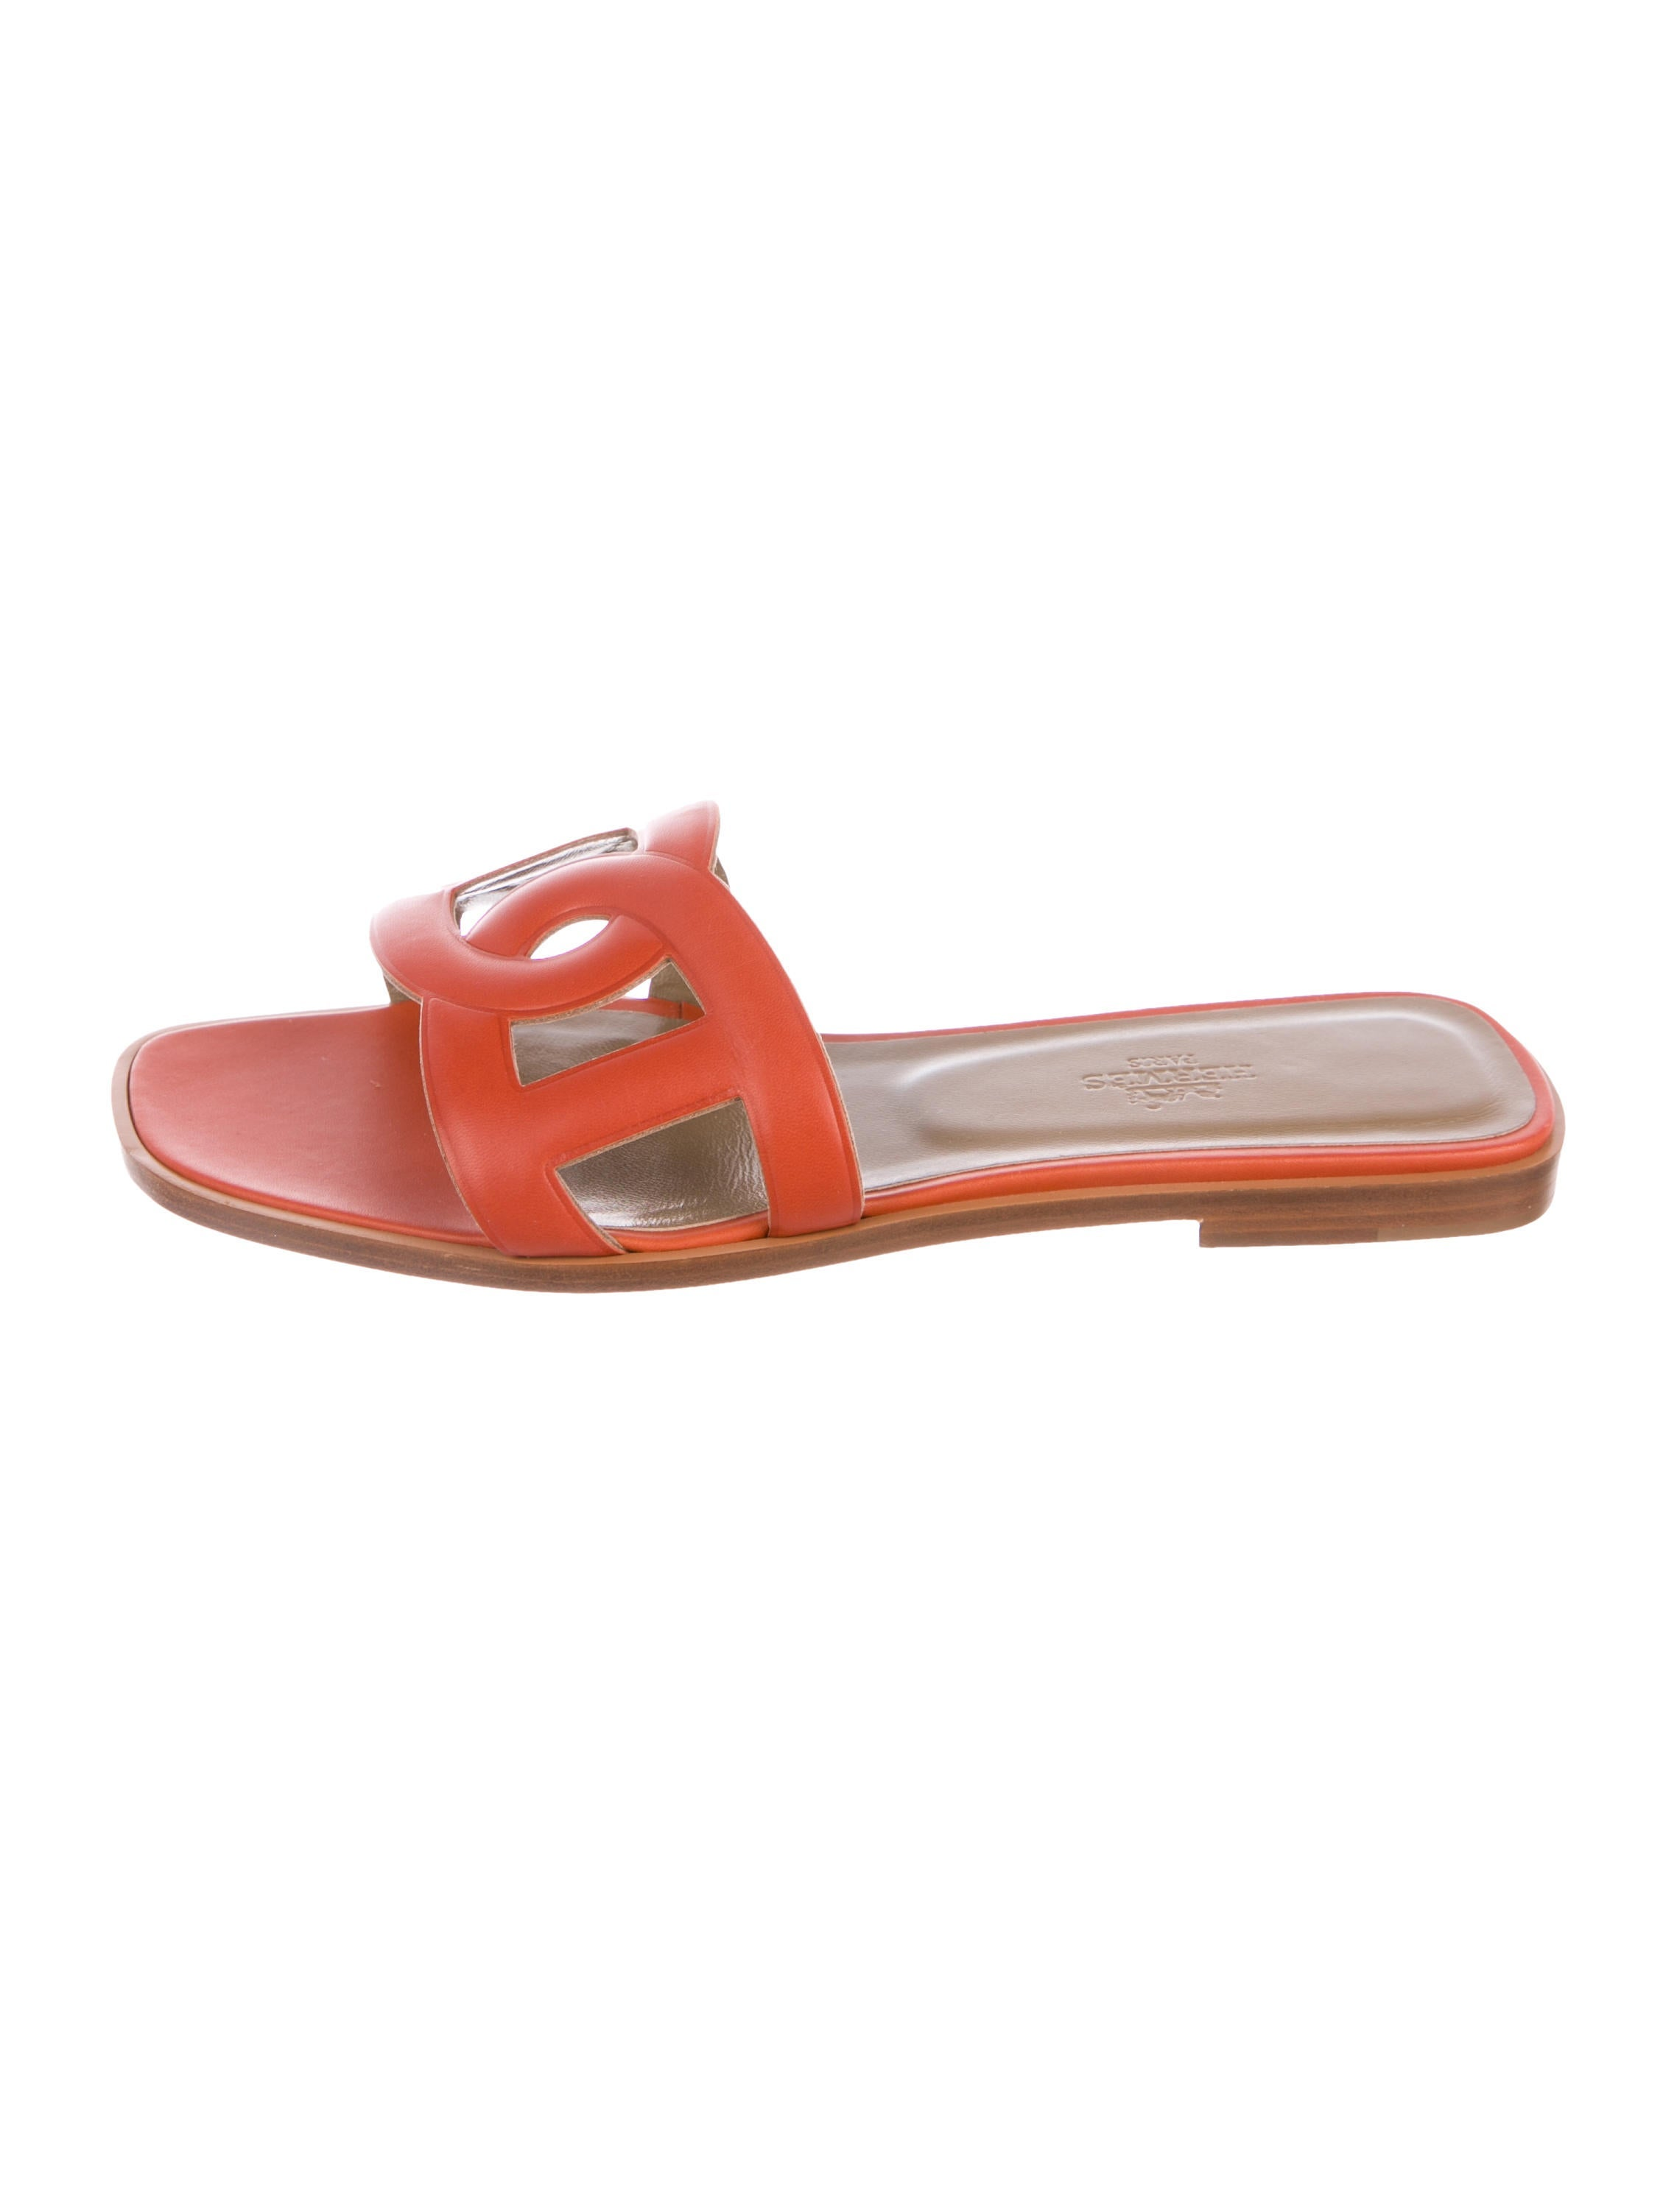 f2753088c3 Hermès Shoes   The RealReal